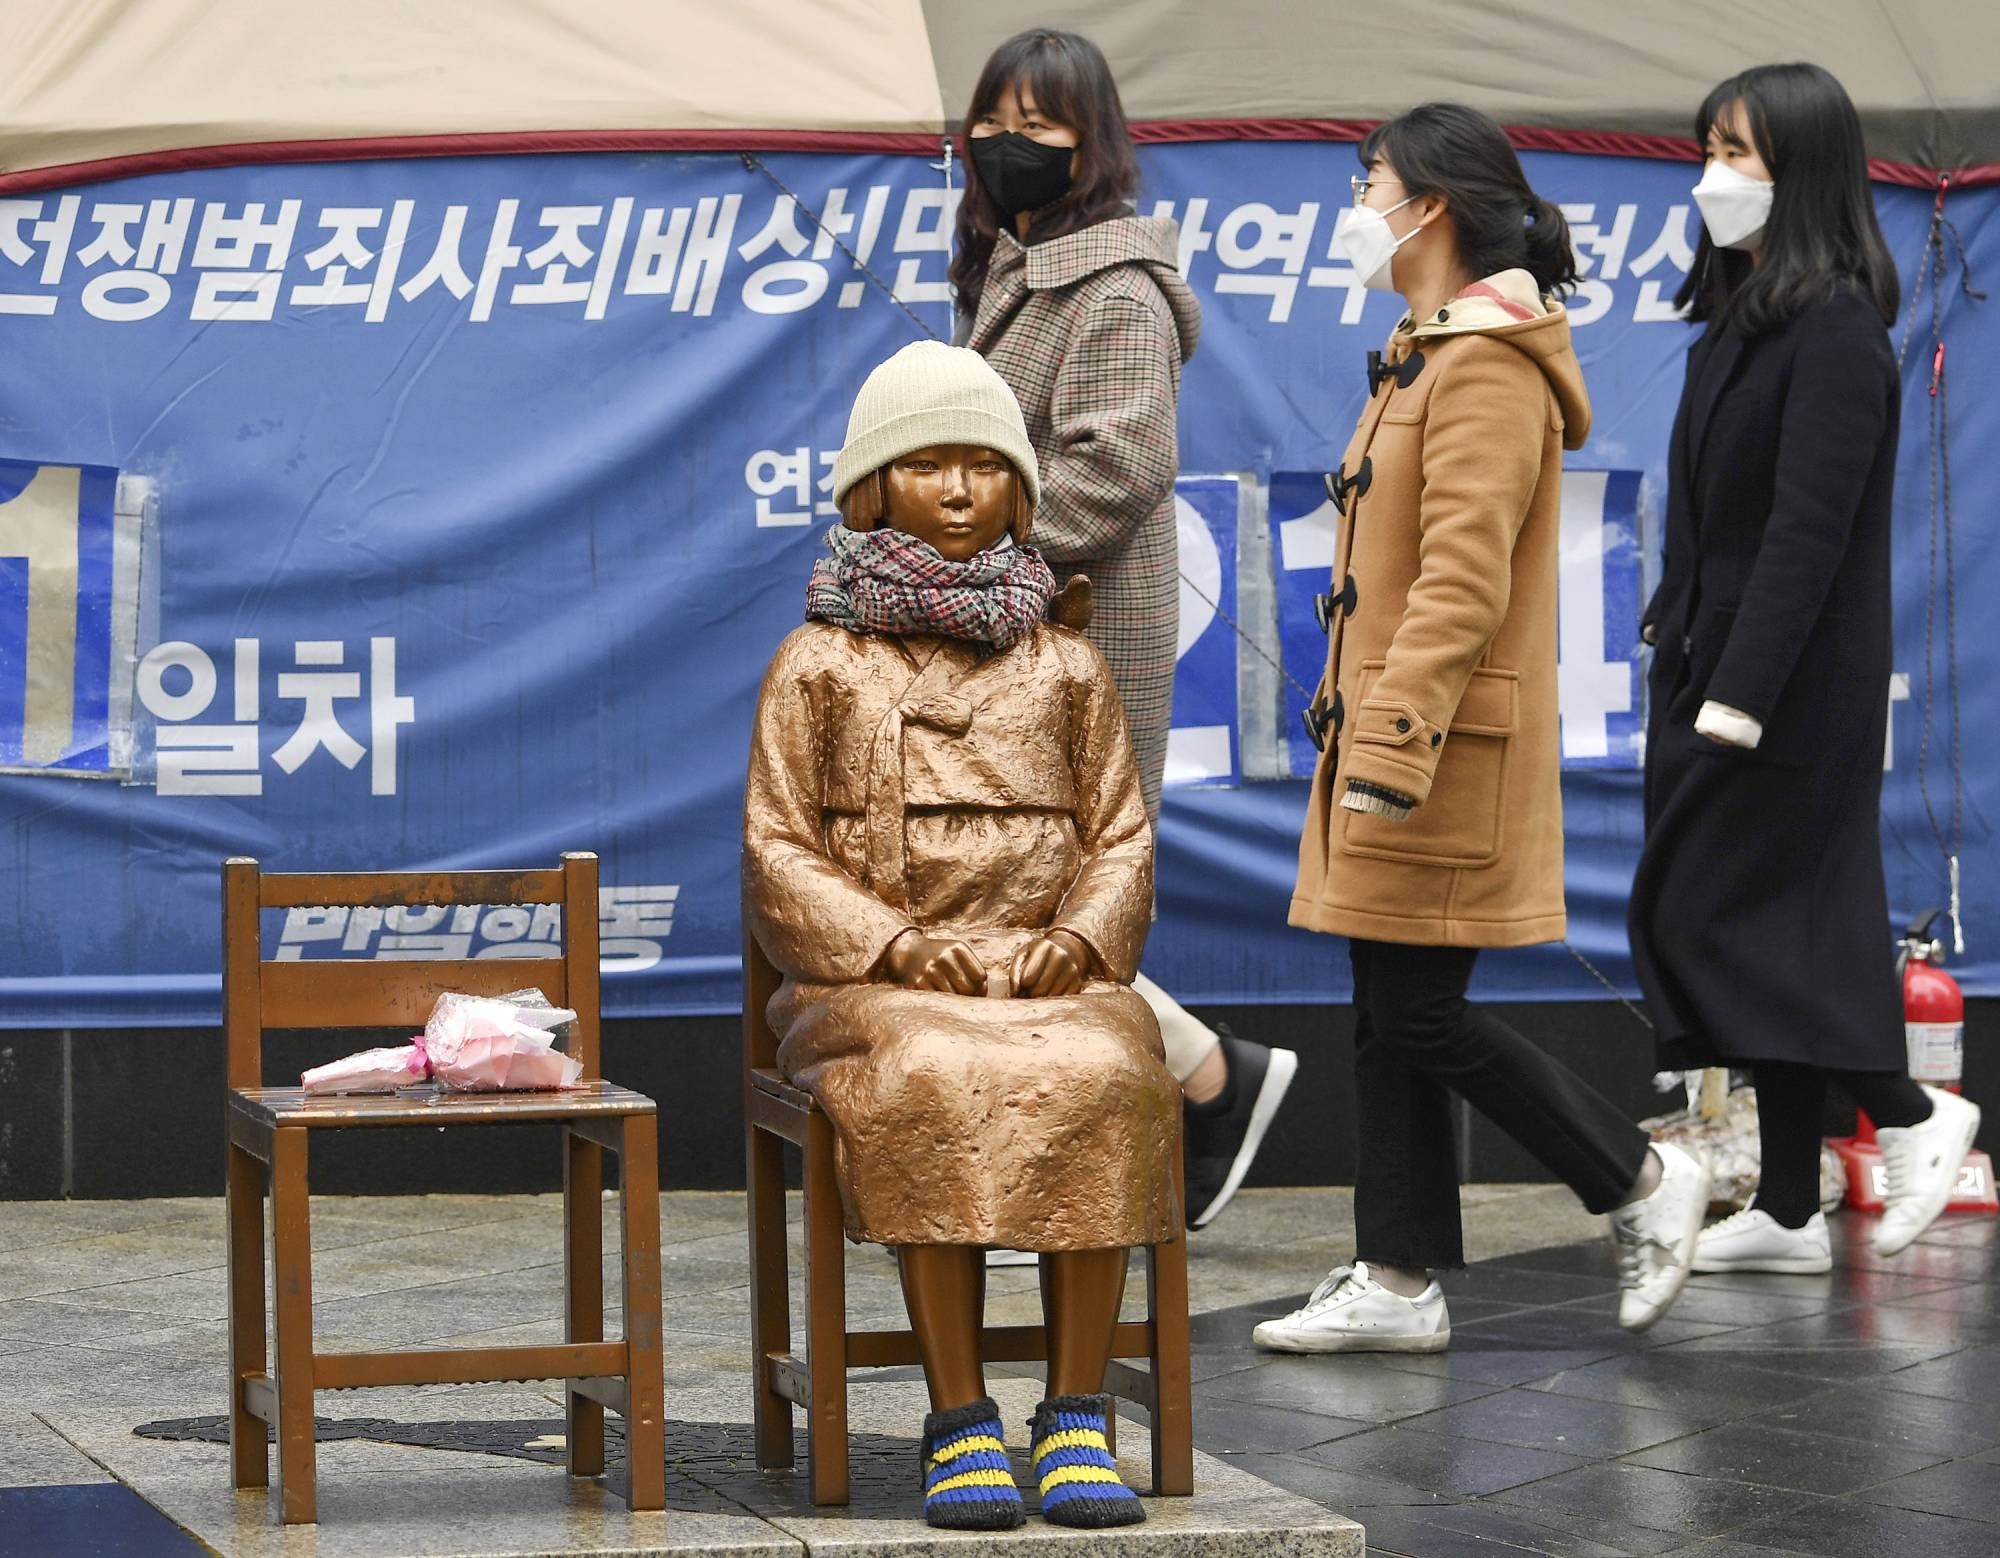 Passersby look at a statue symbolizing the so-called comfort women, who suffered under Japan's military brothel system before and during World War II, in front of the Japanese Embassy in Seoul on Friday. | KYODO